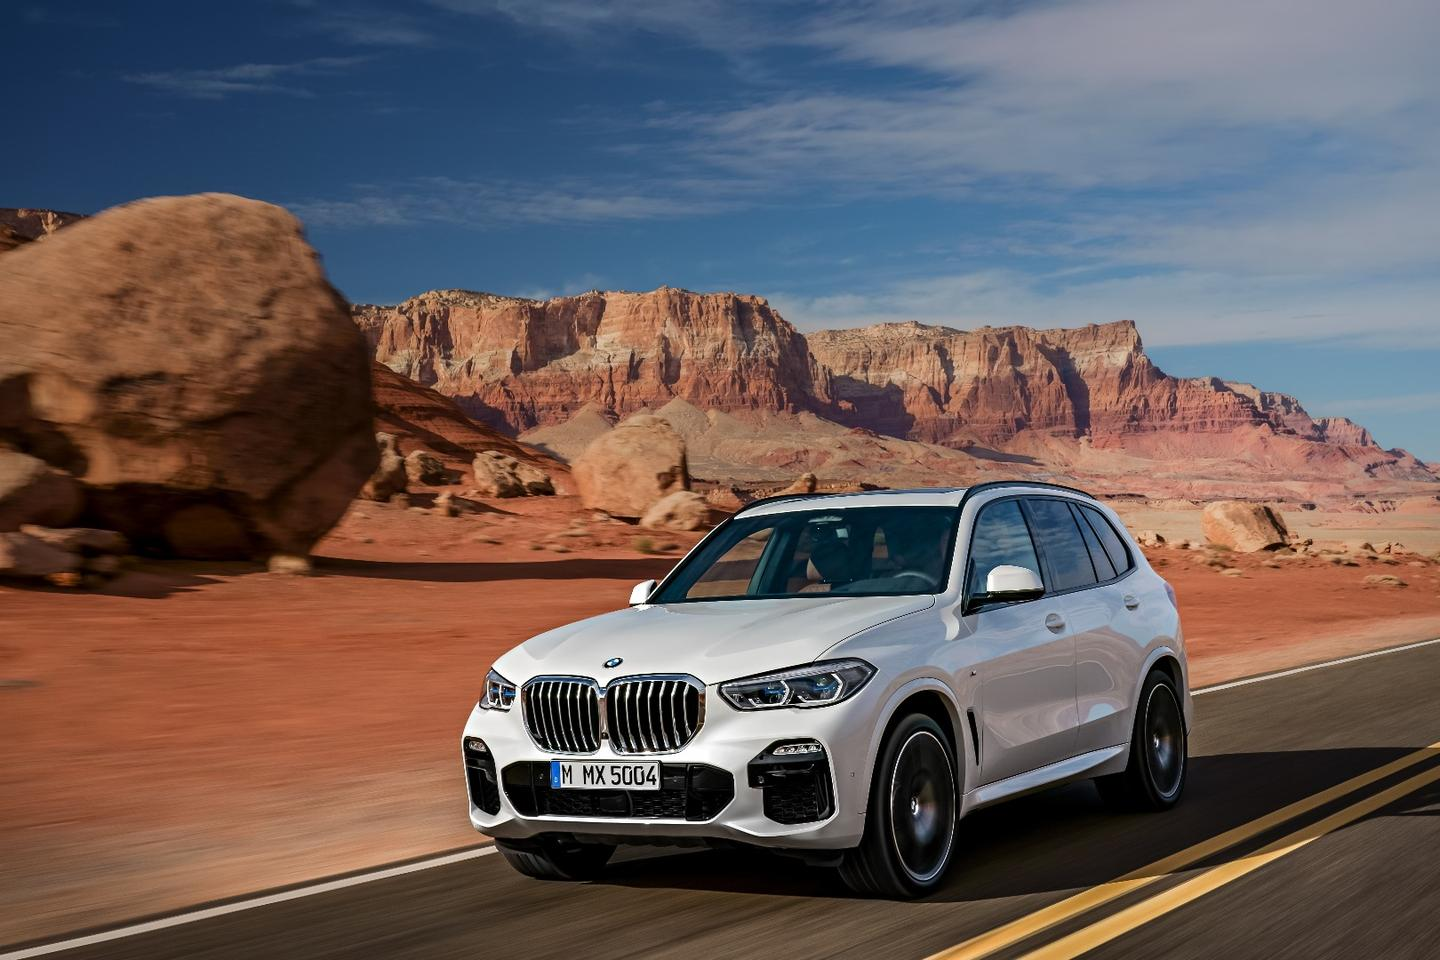 BMW has rolled out the fourth generation of its ever-popular X5